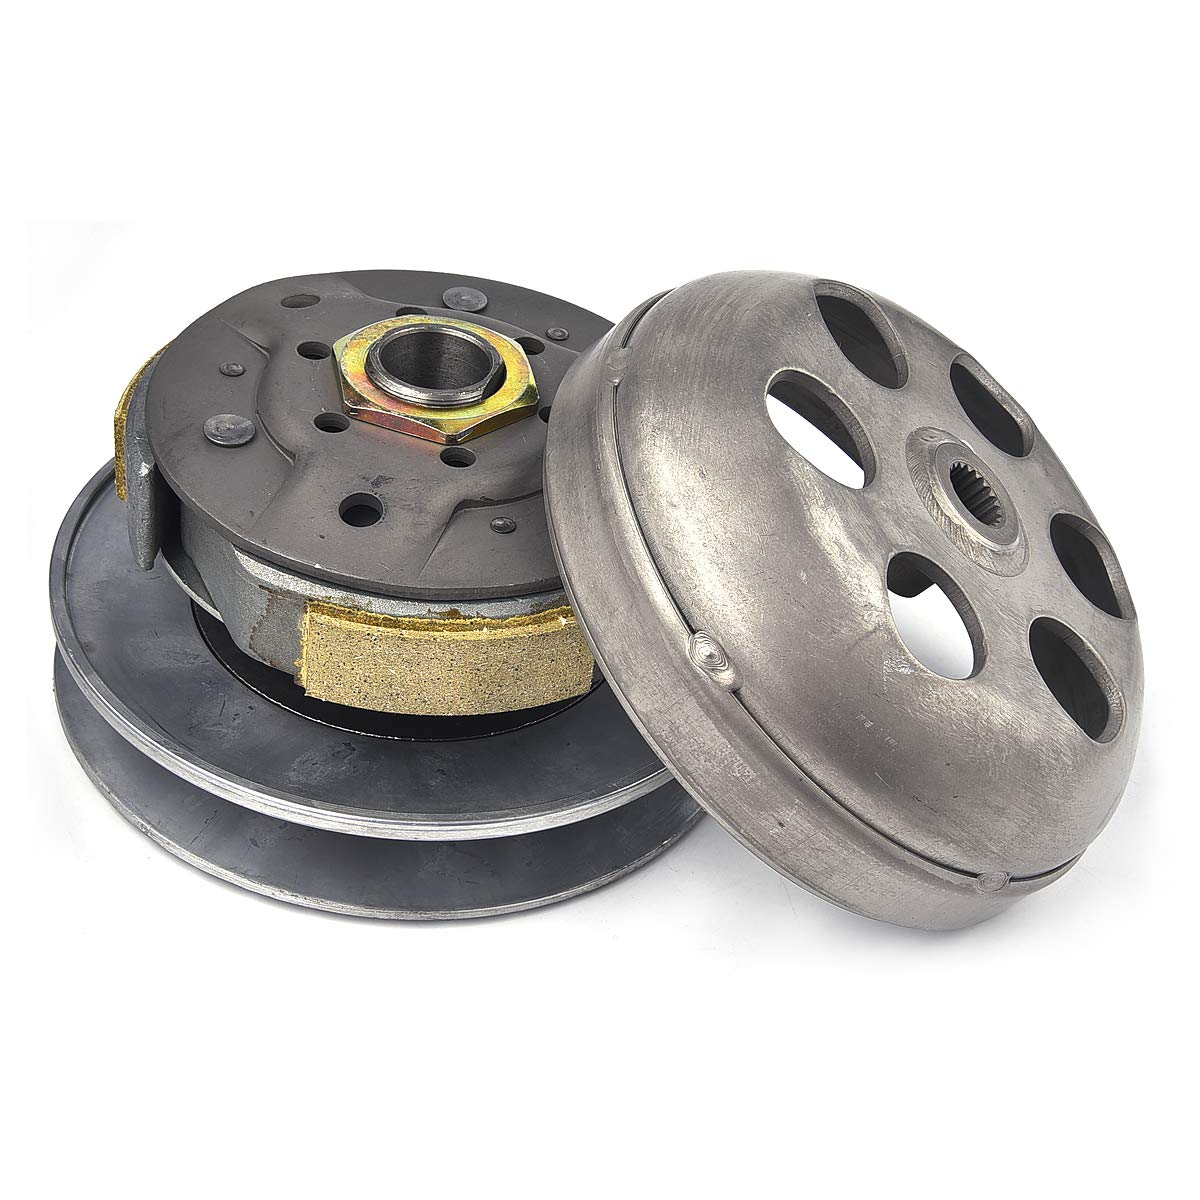 Secondary Rear Clutch Driven Pulley for Honda Helix CN250 CH250 Elite Touring Scooter